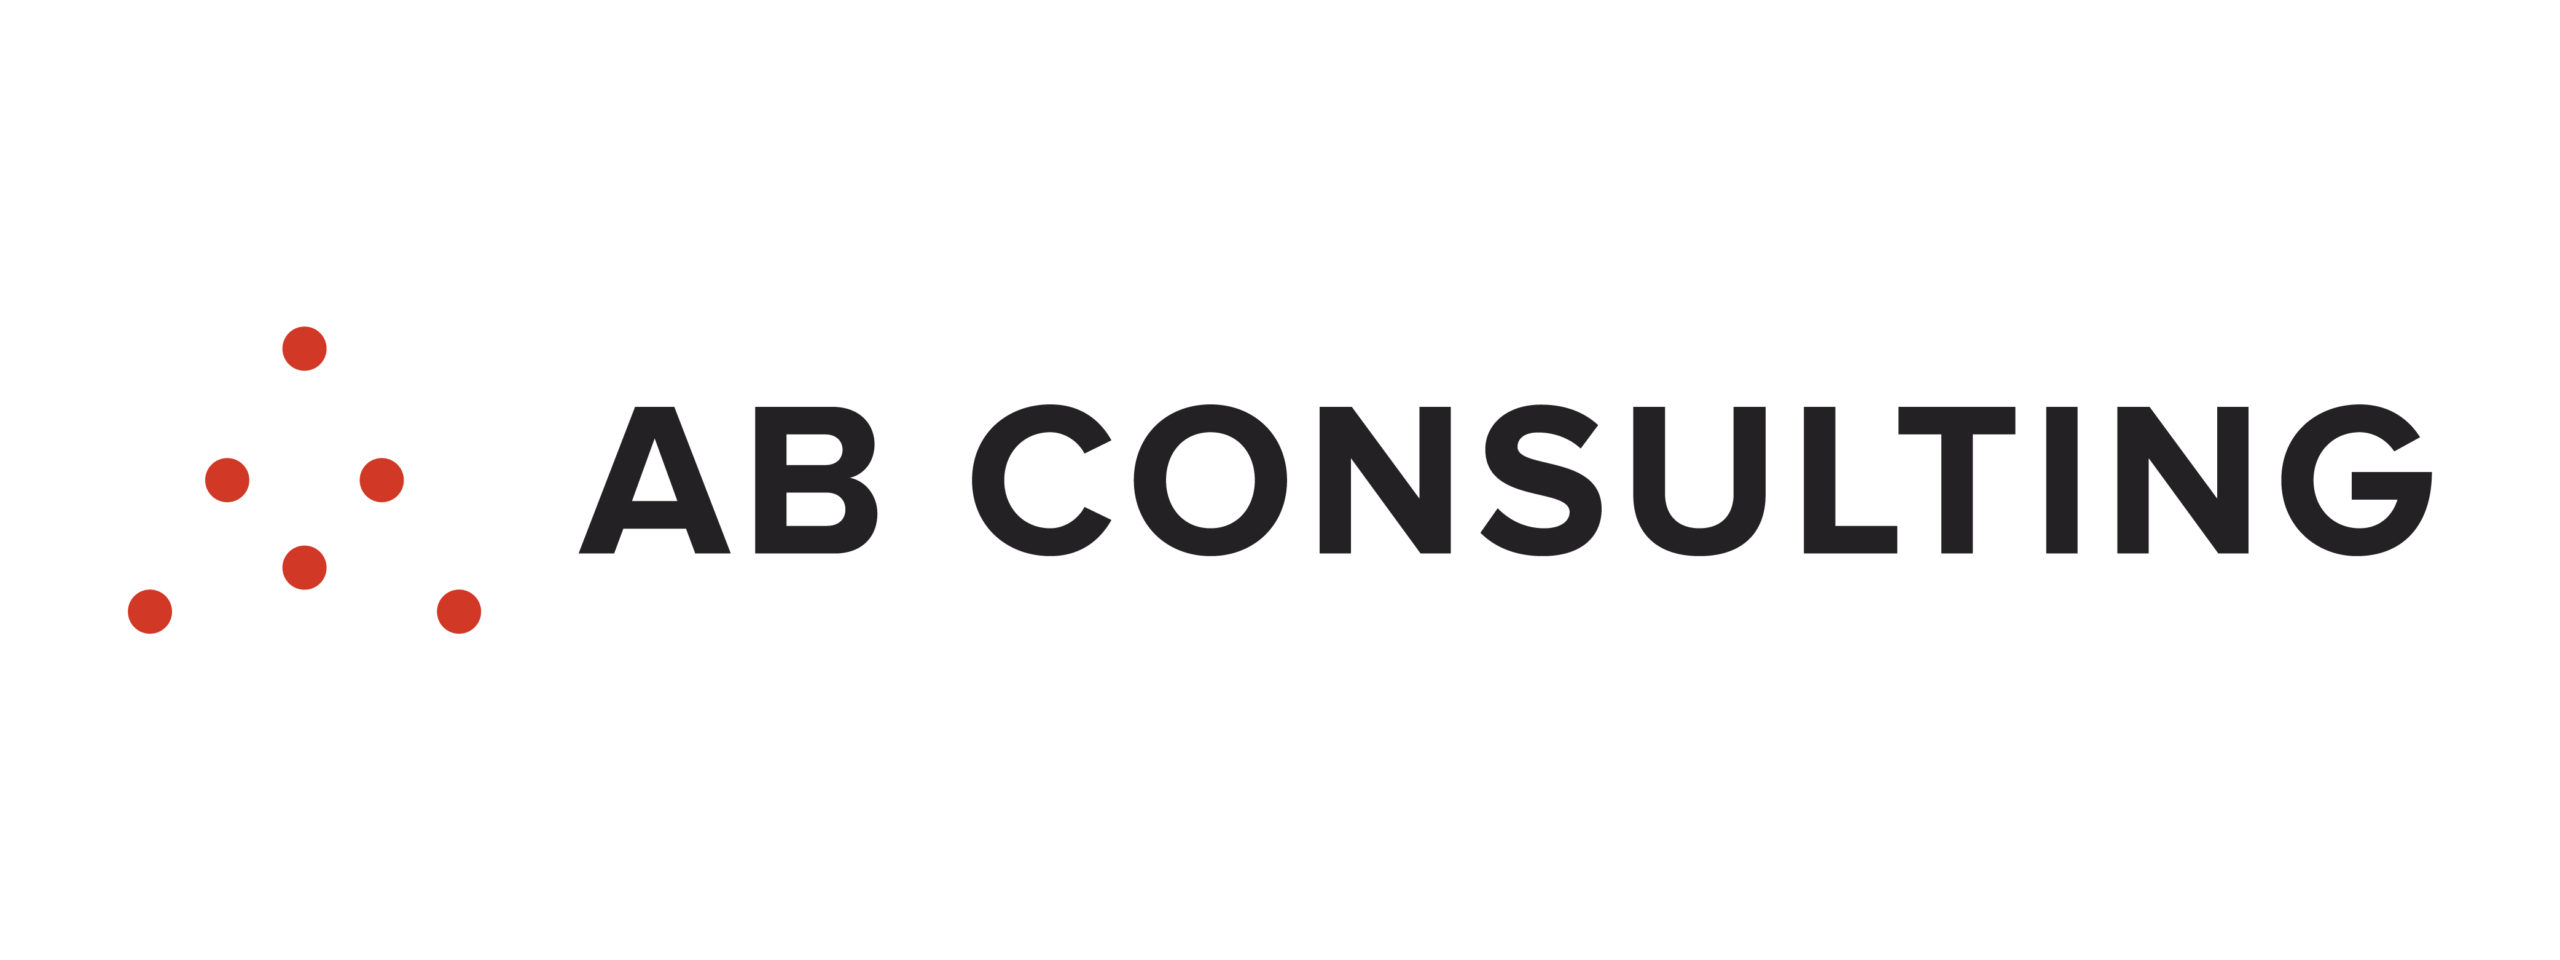 AB Consulting_Master_Logo_Horiz_Full Color